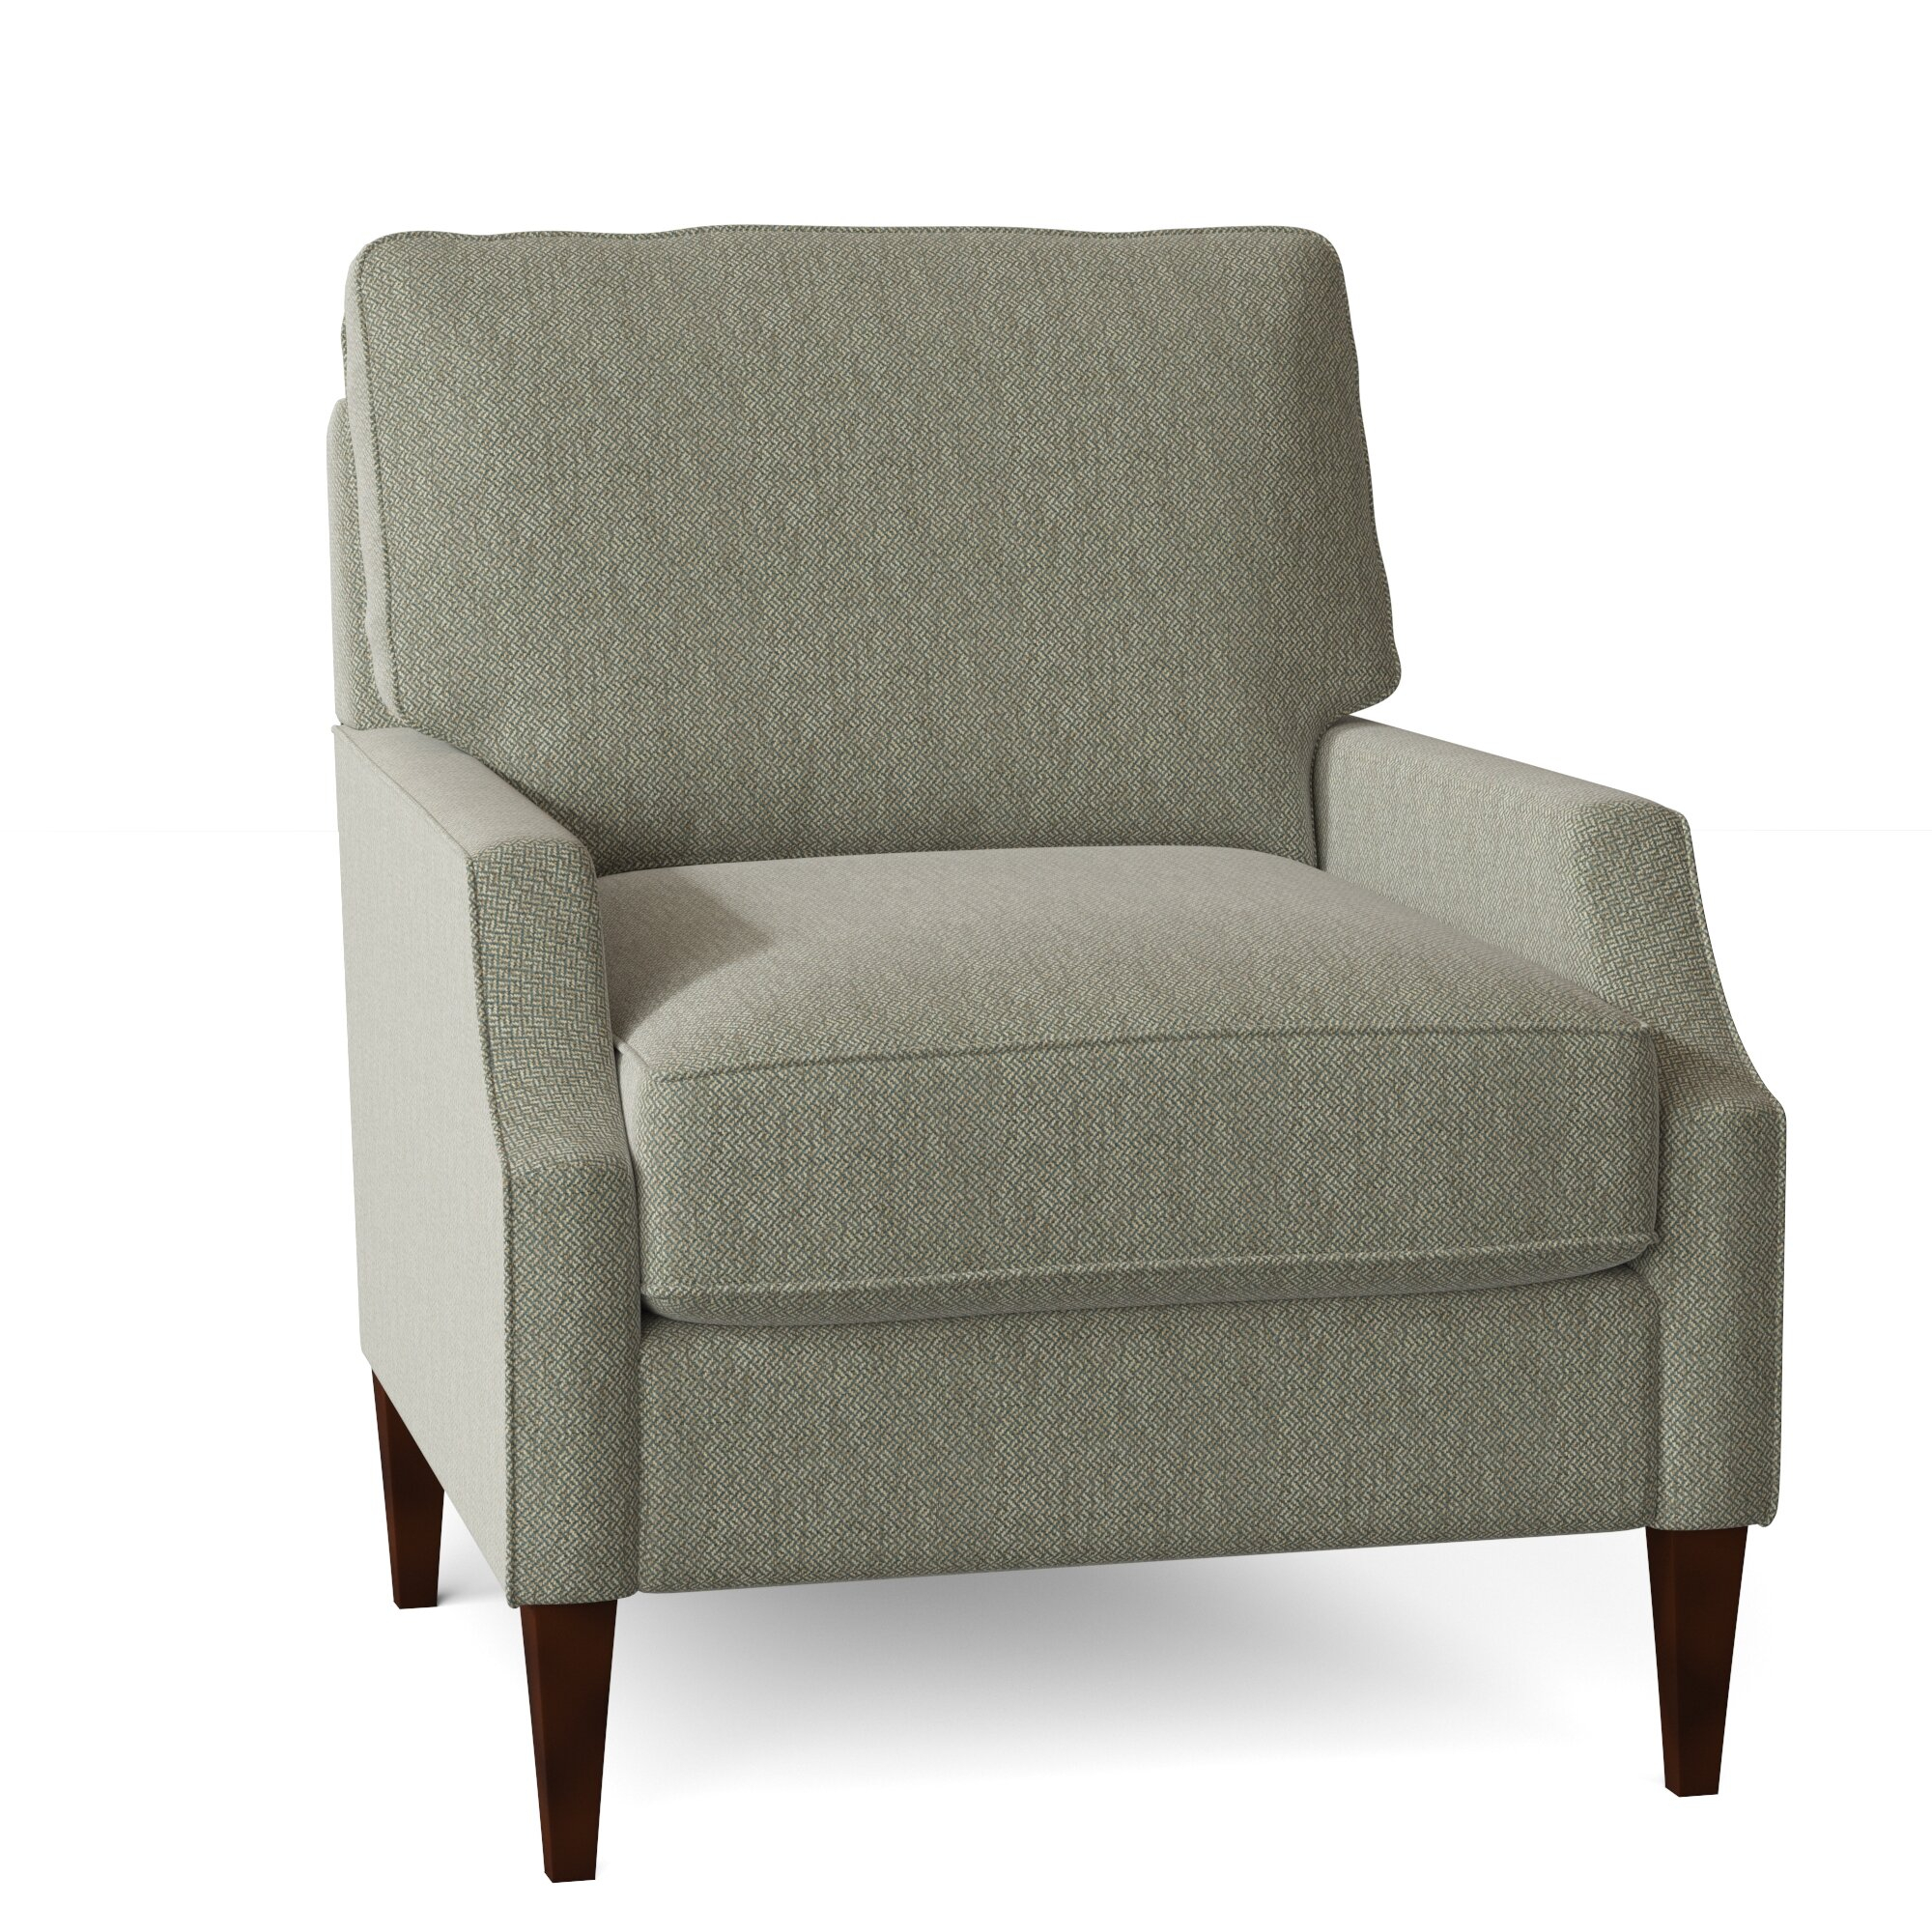 Kaat Armchair Intended For Kasha Armchairs (View 6 of 15)